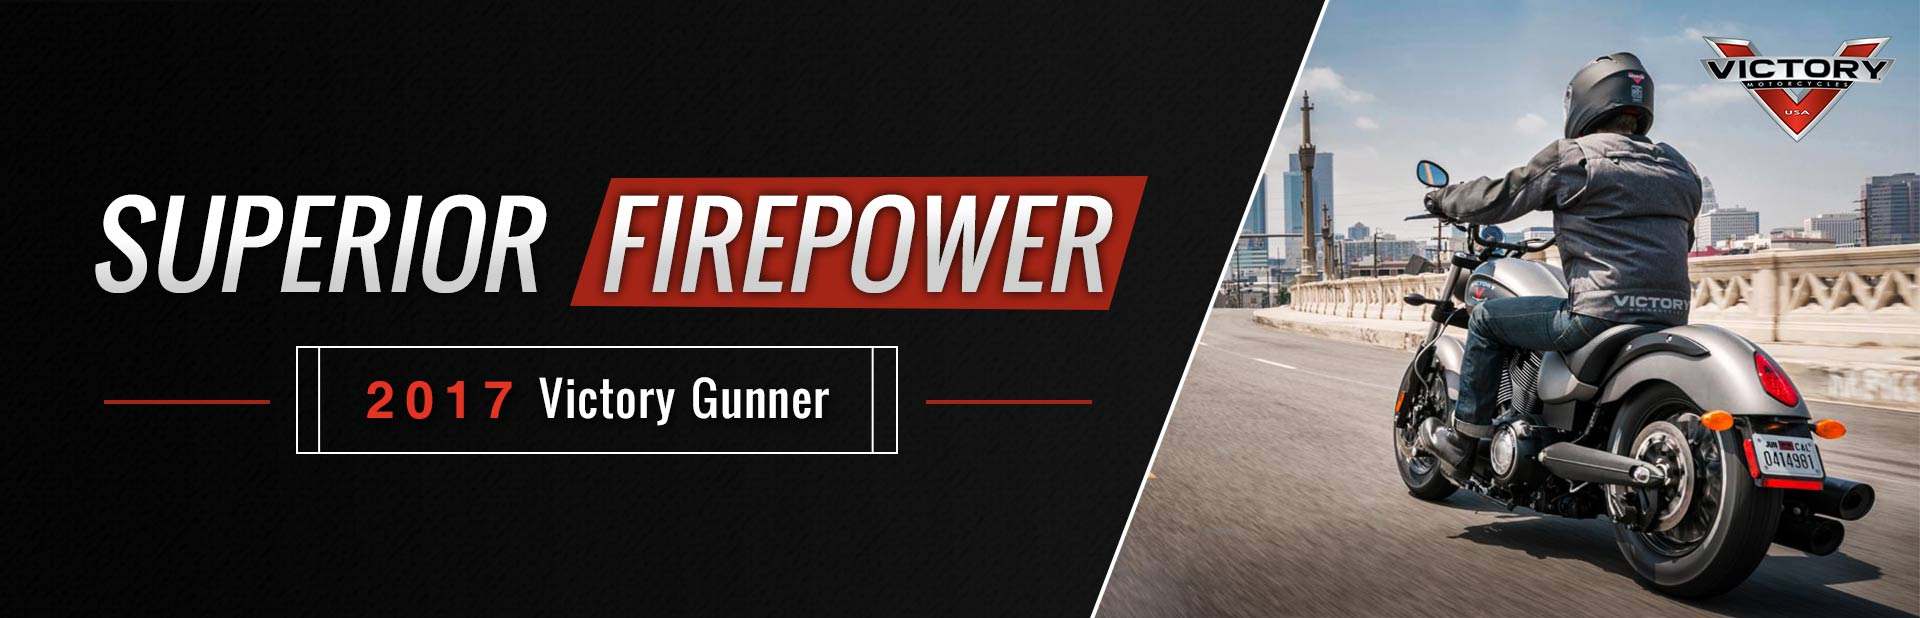 2017 Victory Gunner: Click here to view the lineup.